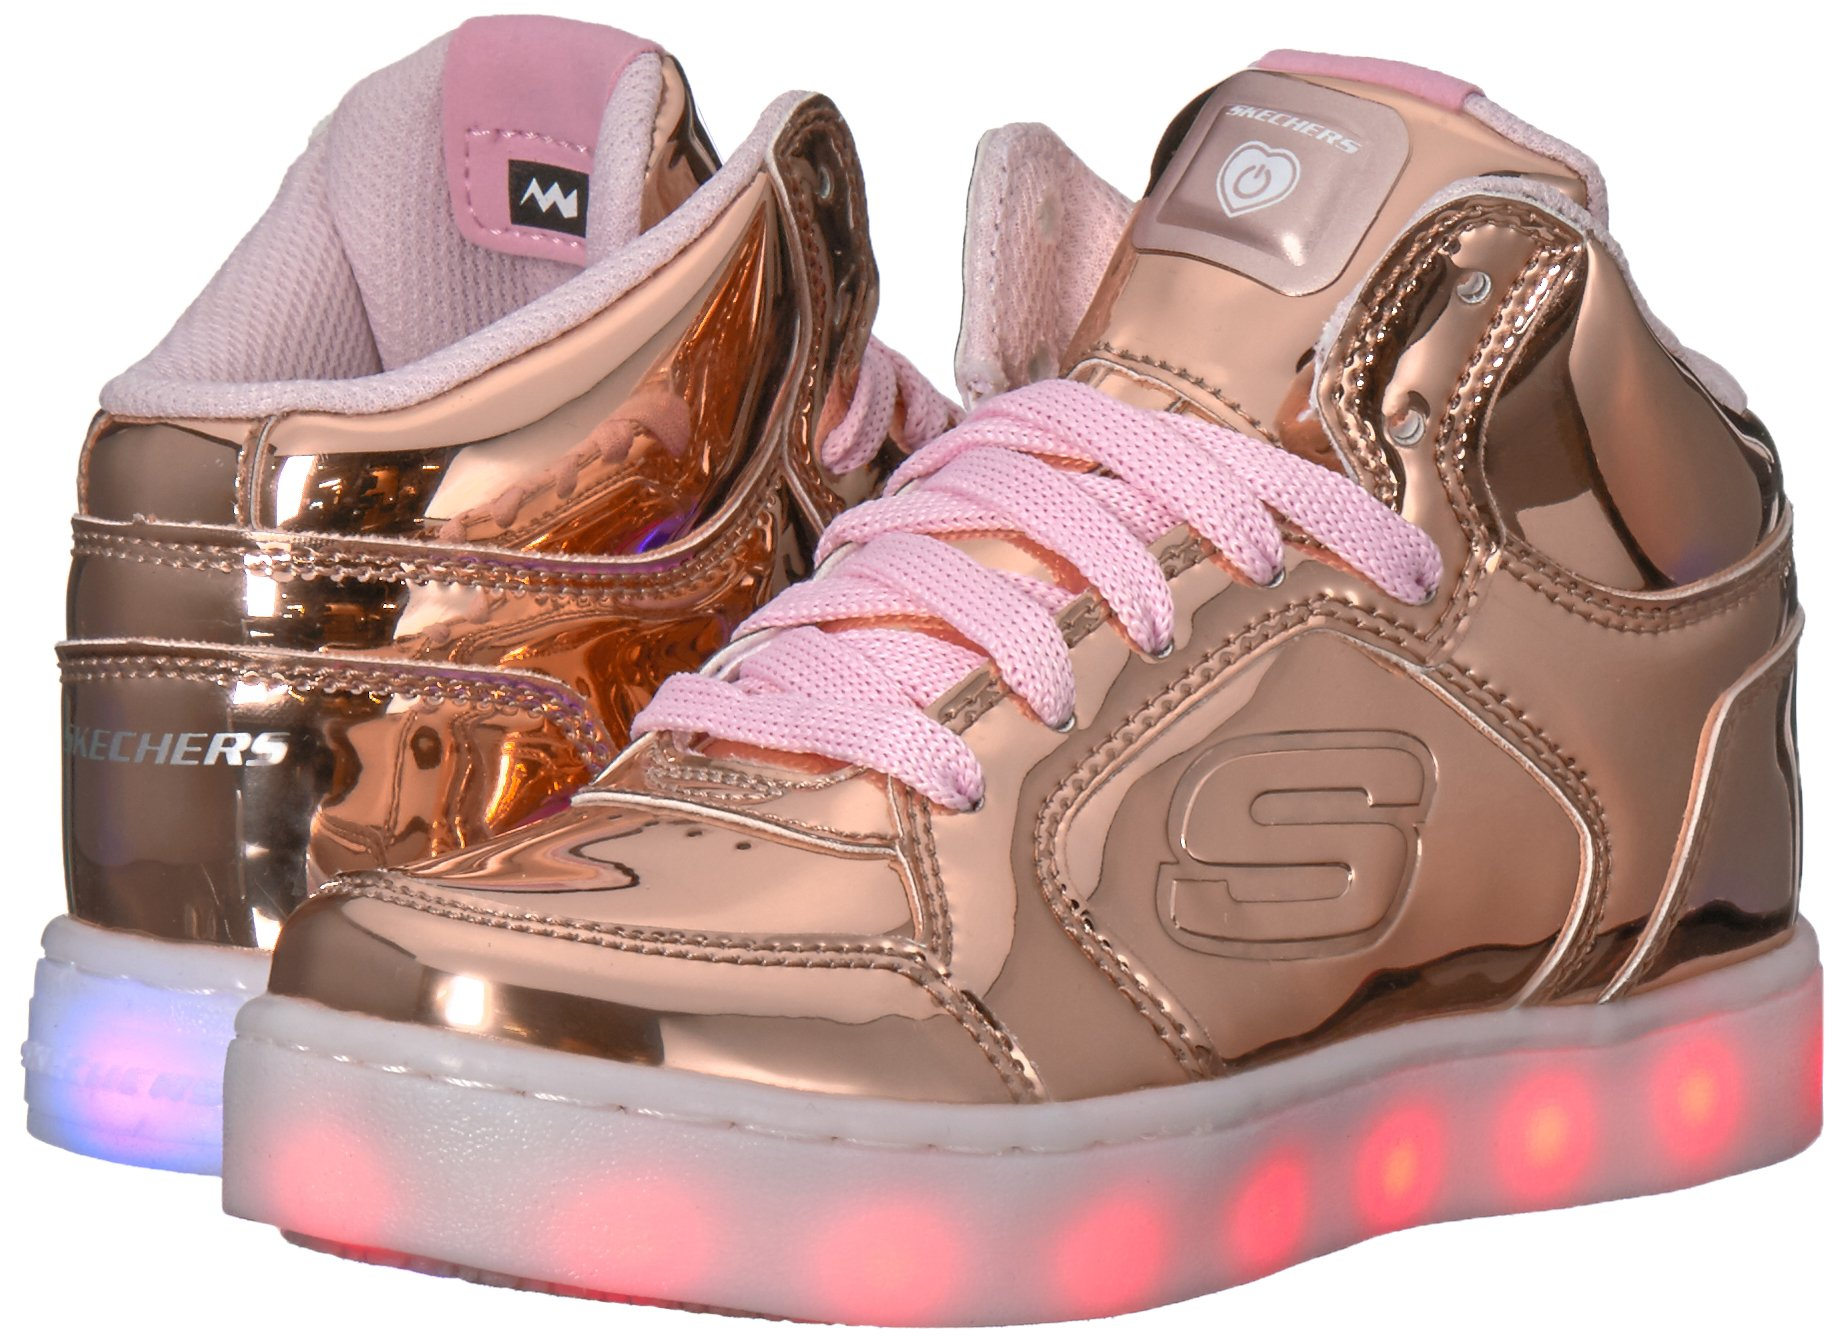 Skechers Kids Energy Lights-Dance-N-Dazzle Sneaker,Rose Gold,1 M US Little Kid by Skechers (Image #6)